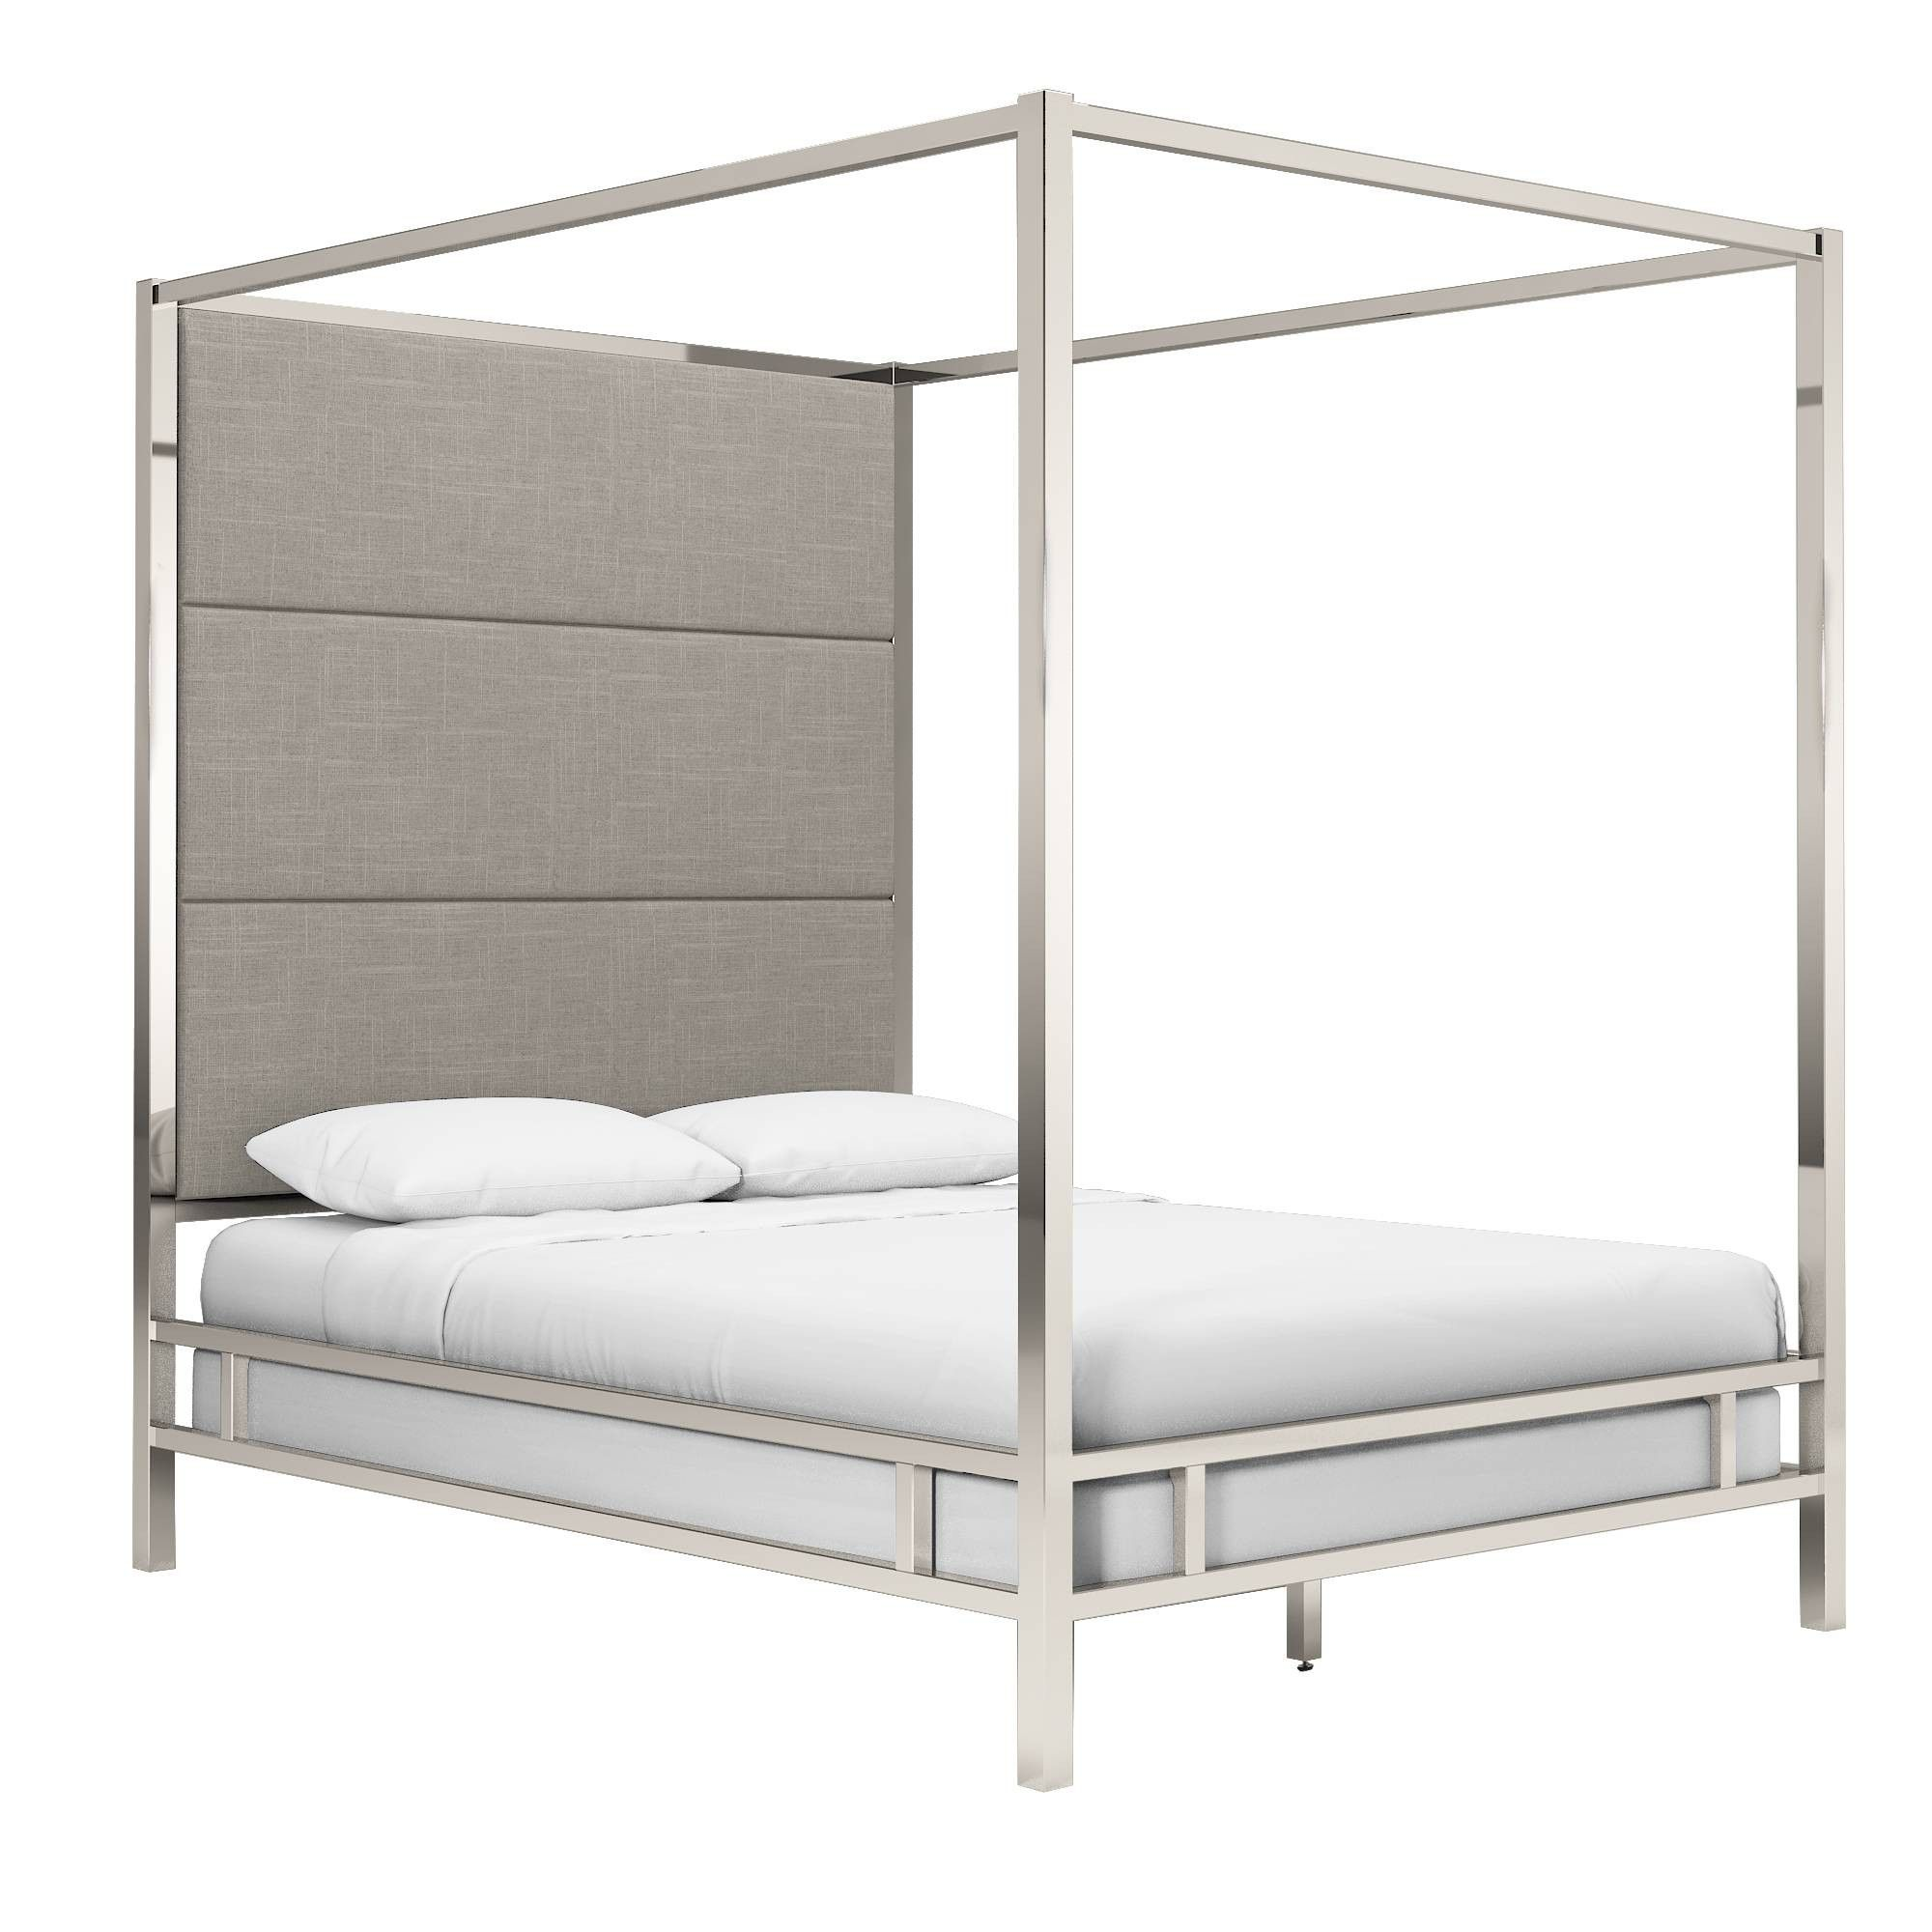 Full evert chrome metal canopy bed with panel headboard